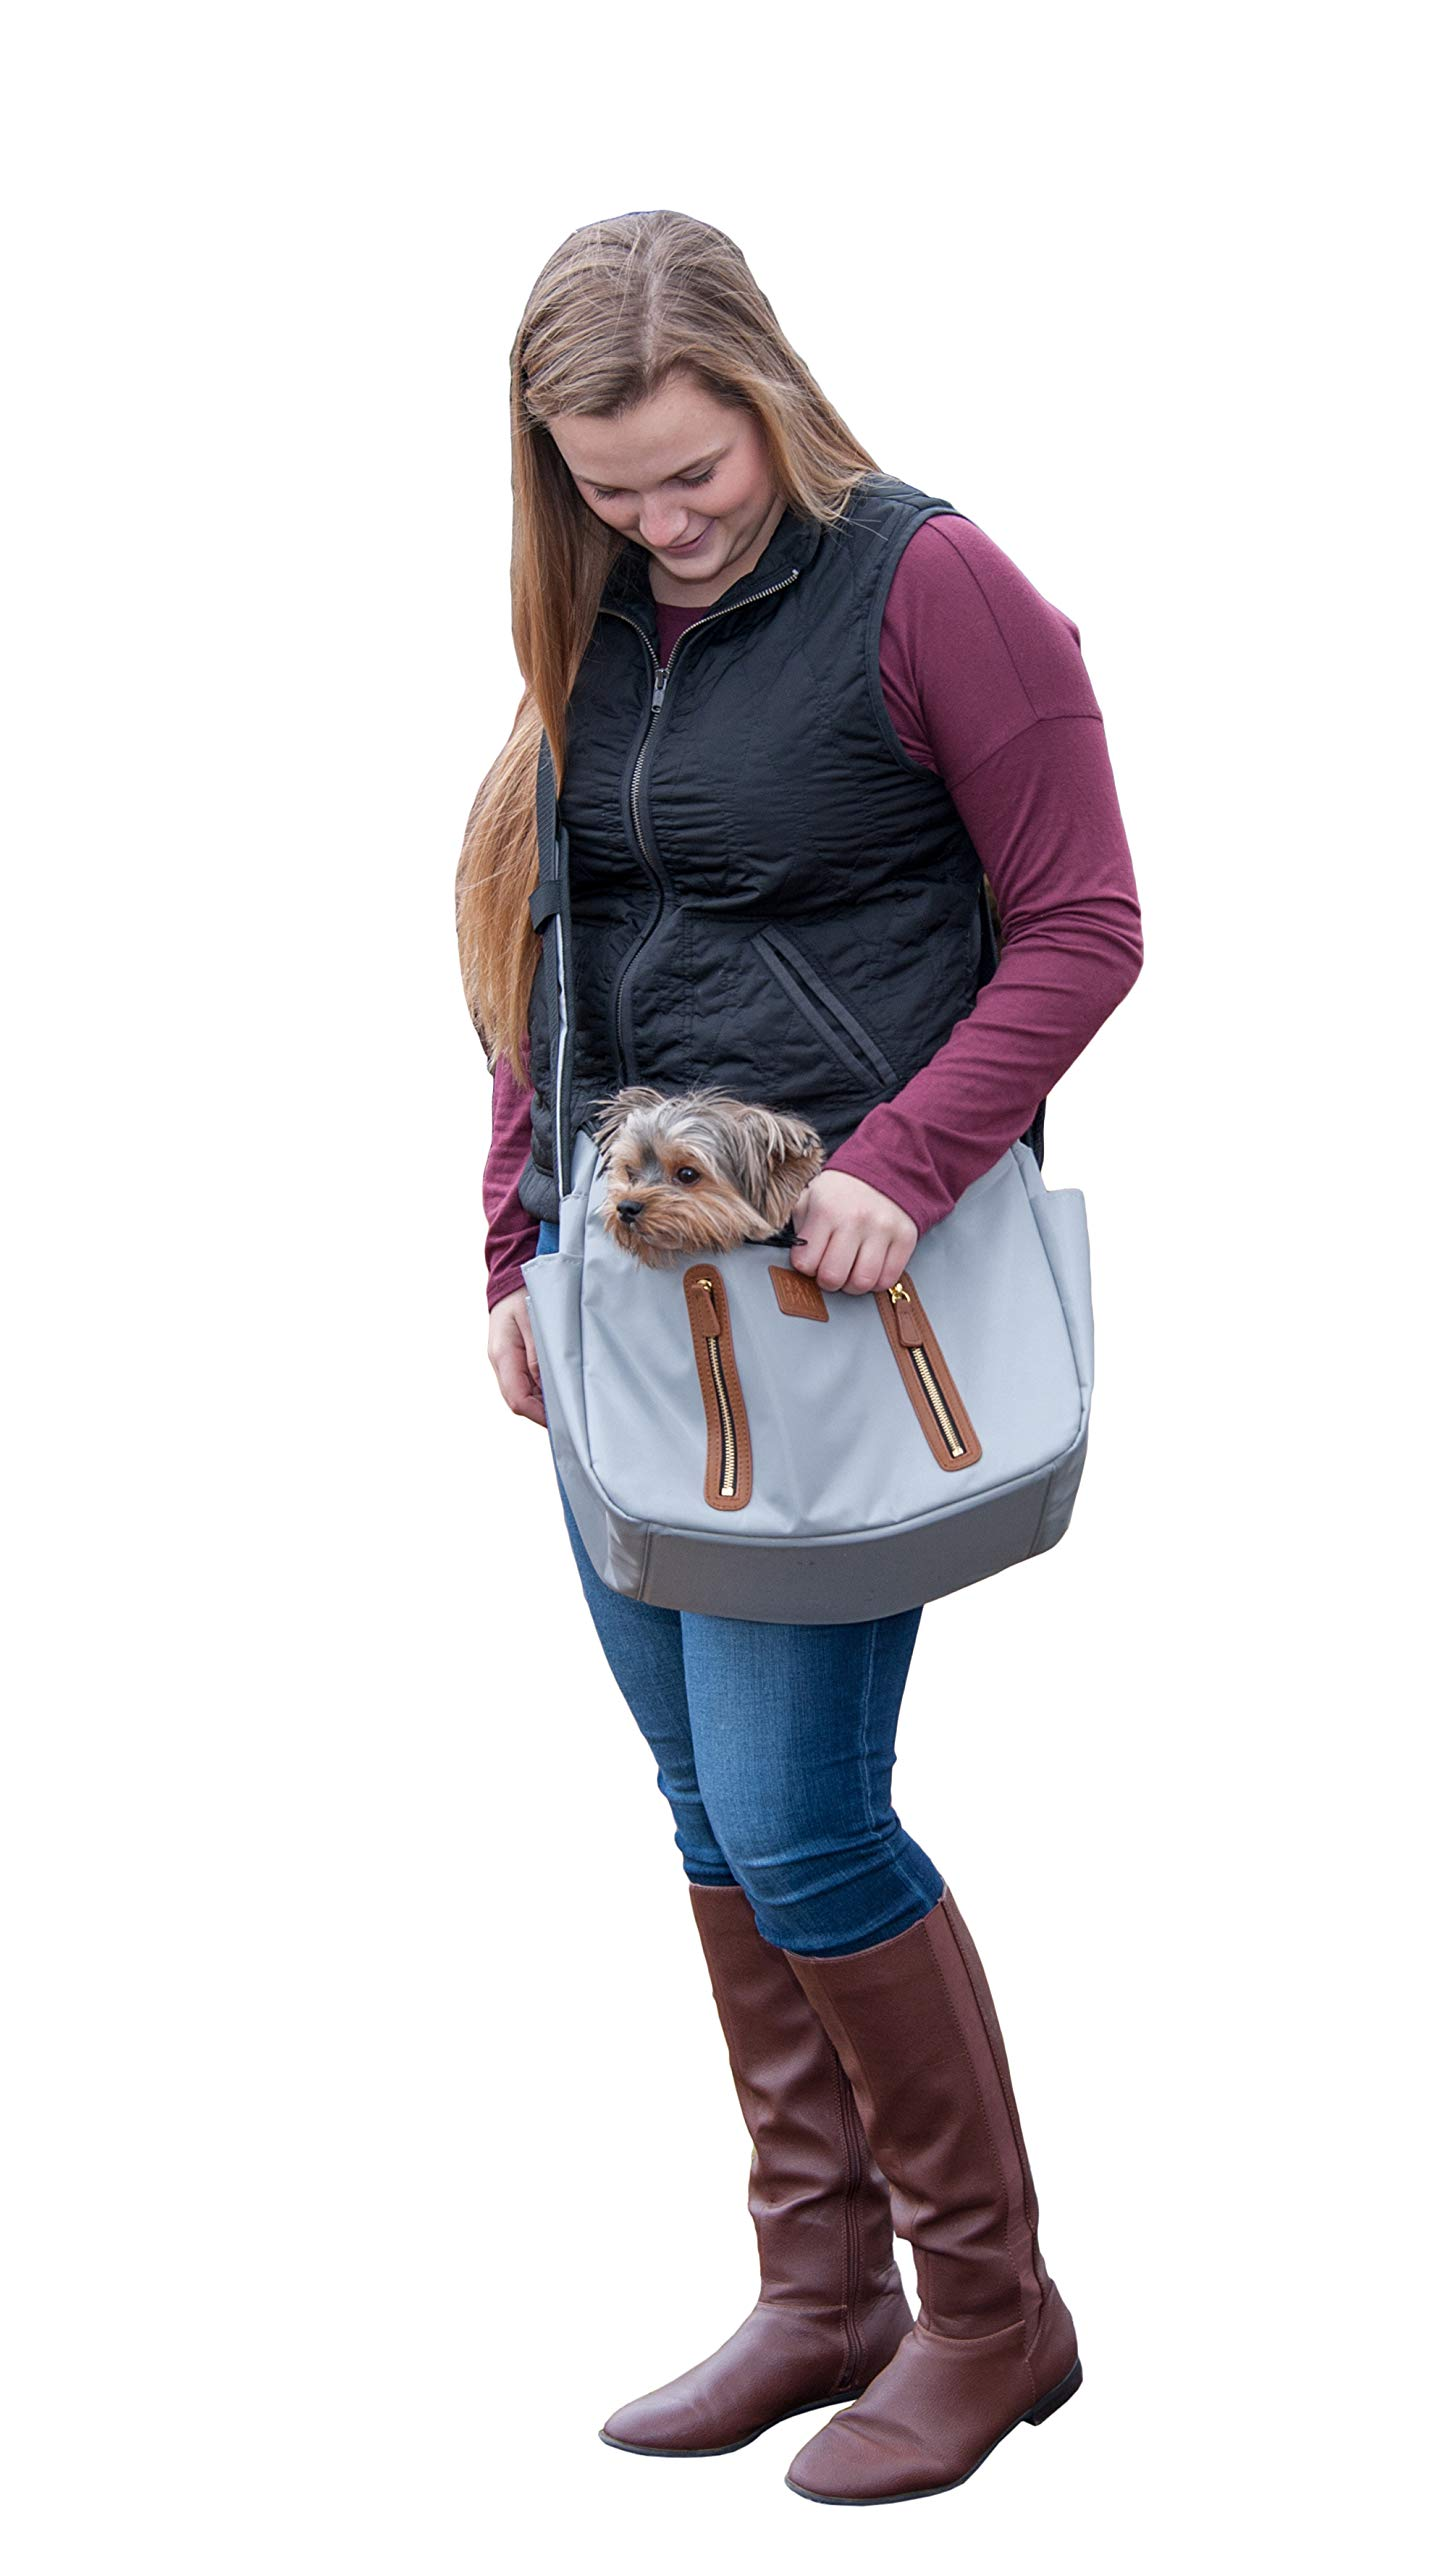 Pet Gear R&R Sling Carrier for Cats/Dogs, Storage Pockets, Removable Washable Liner, Zippered Top with Mesh Window by Pet Gear